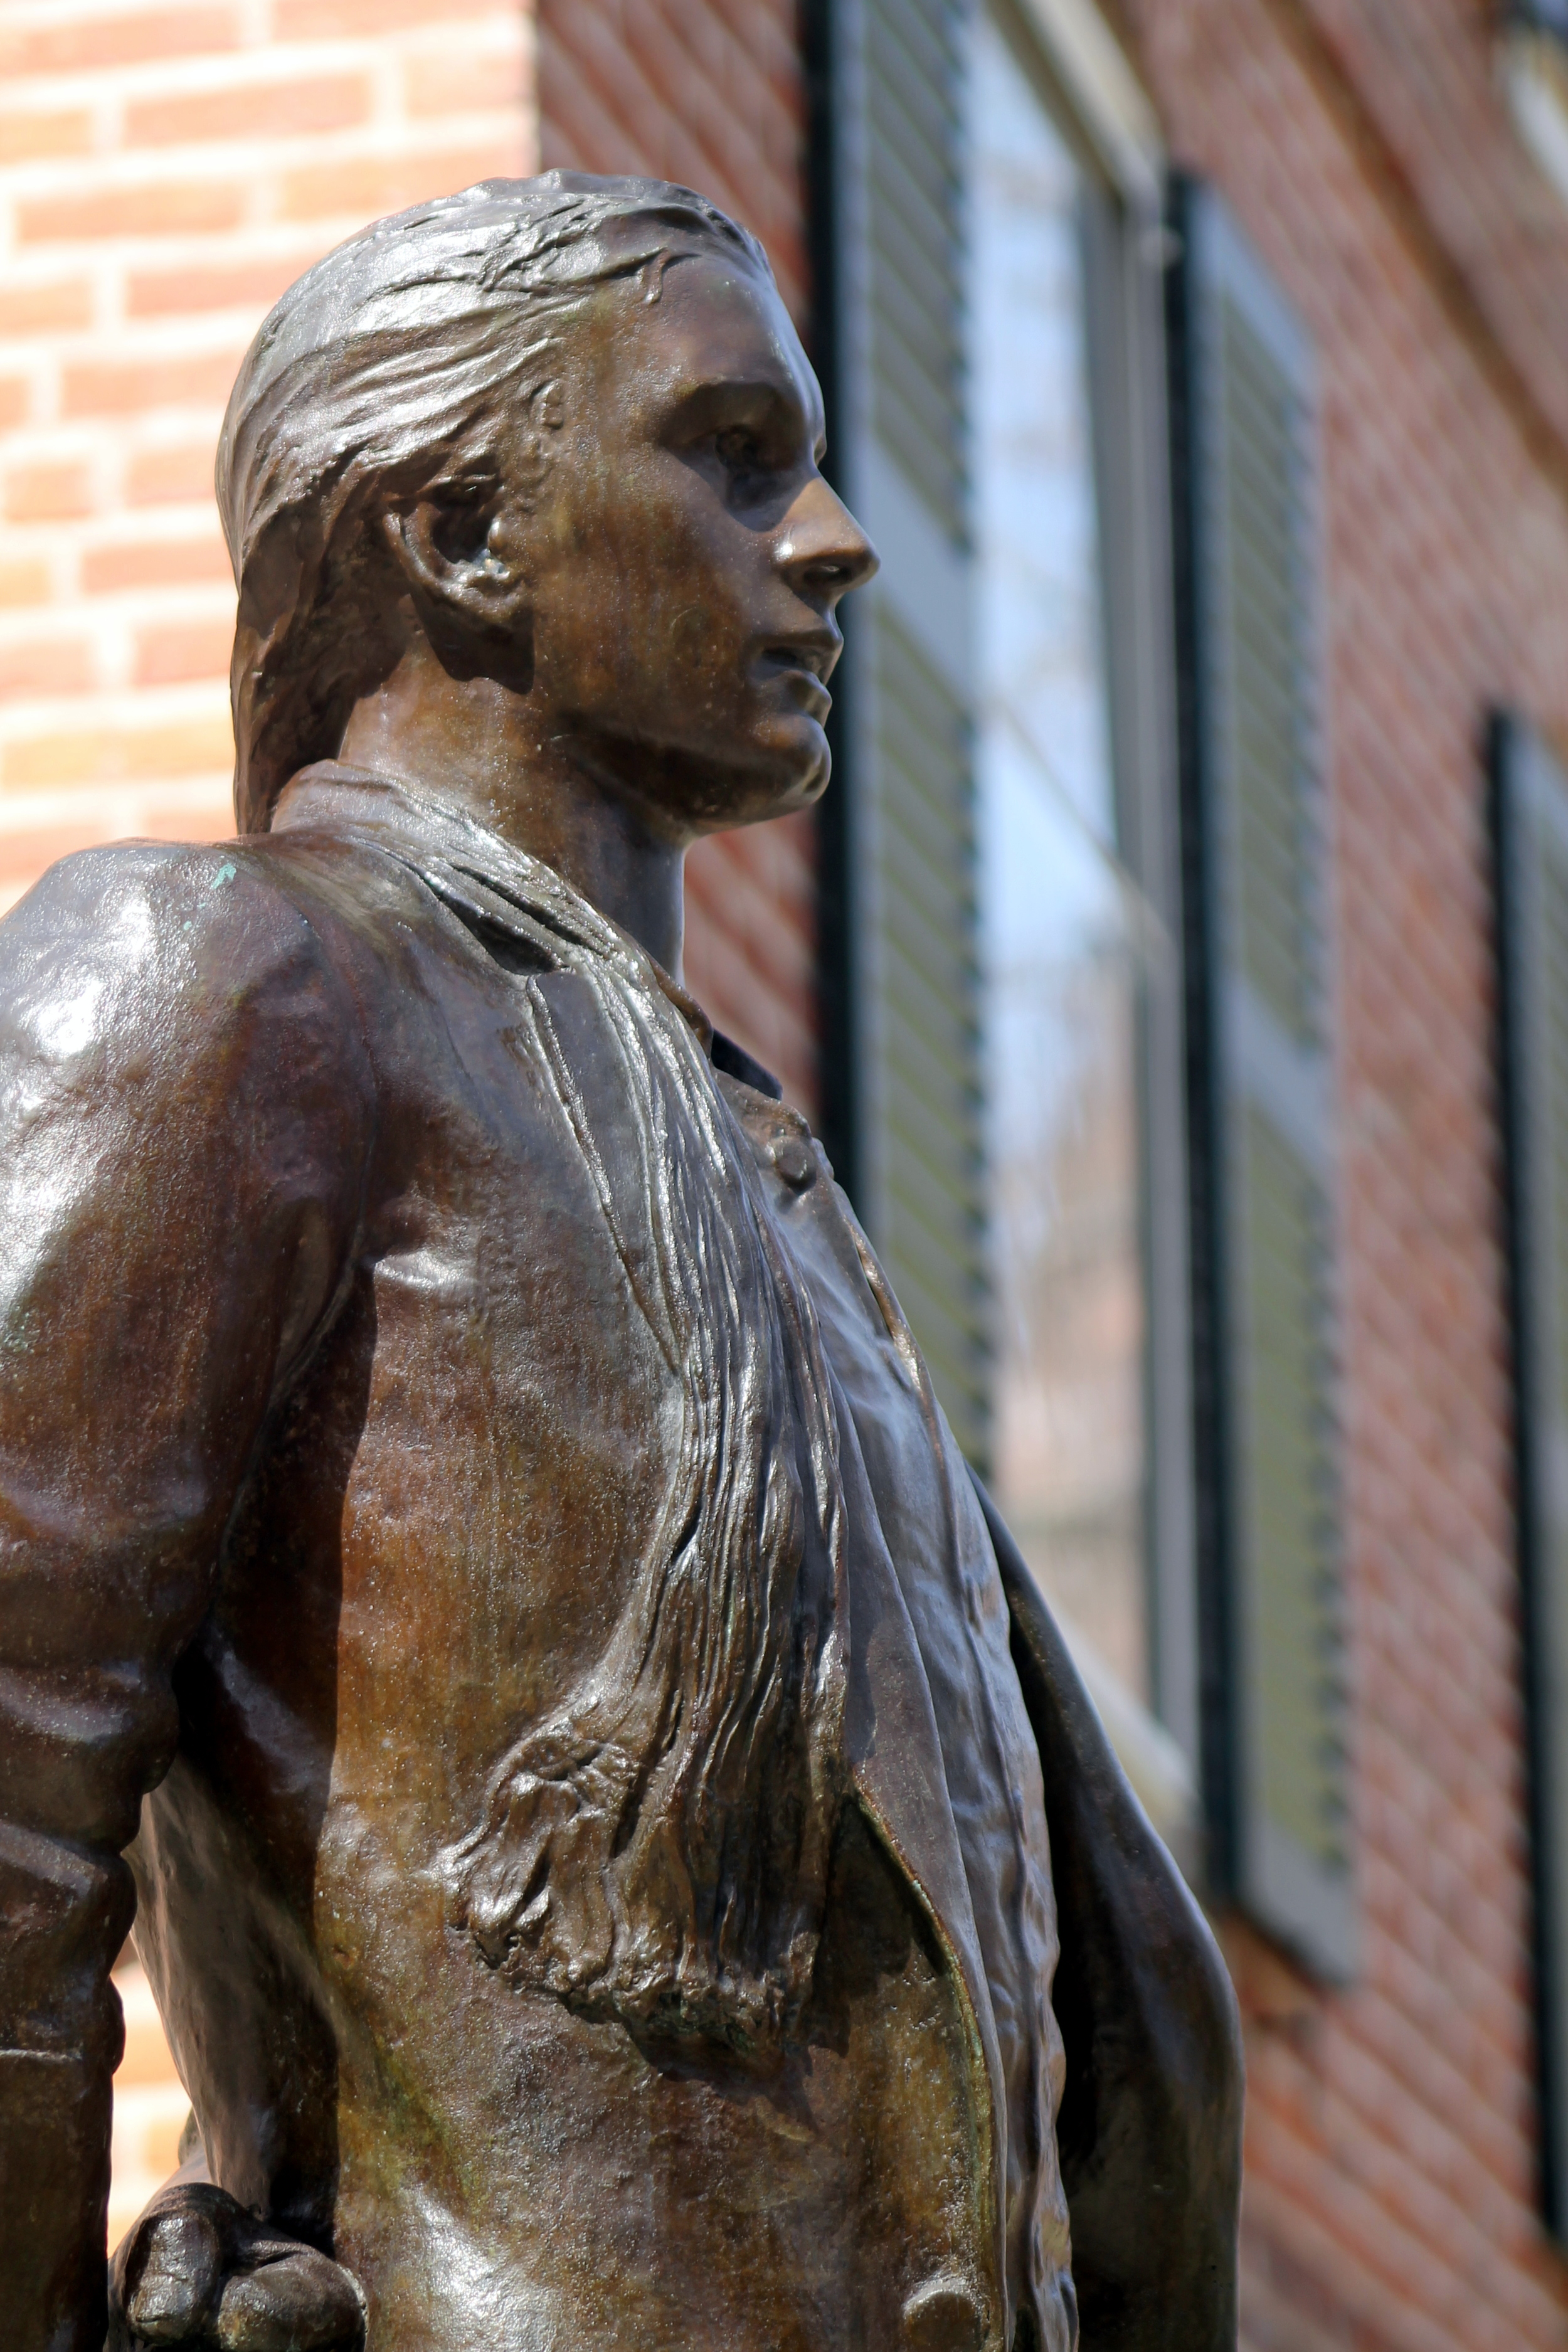 Statue Detail. Nathan Hale. Yale University. Image property of Jessica Gordon Ryan